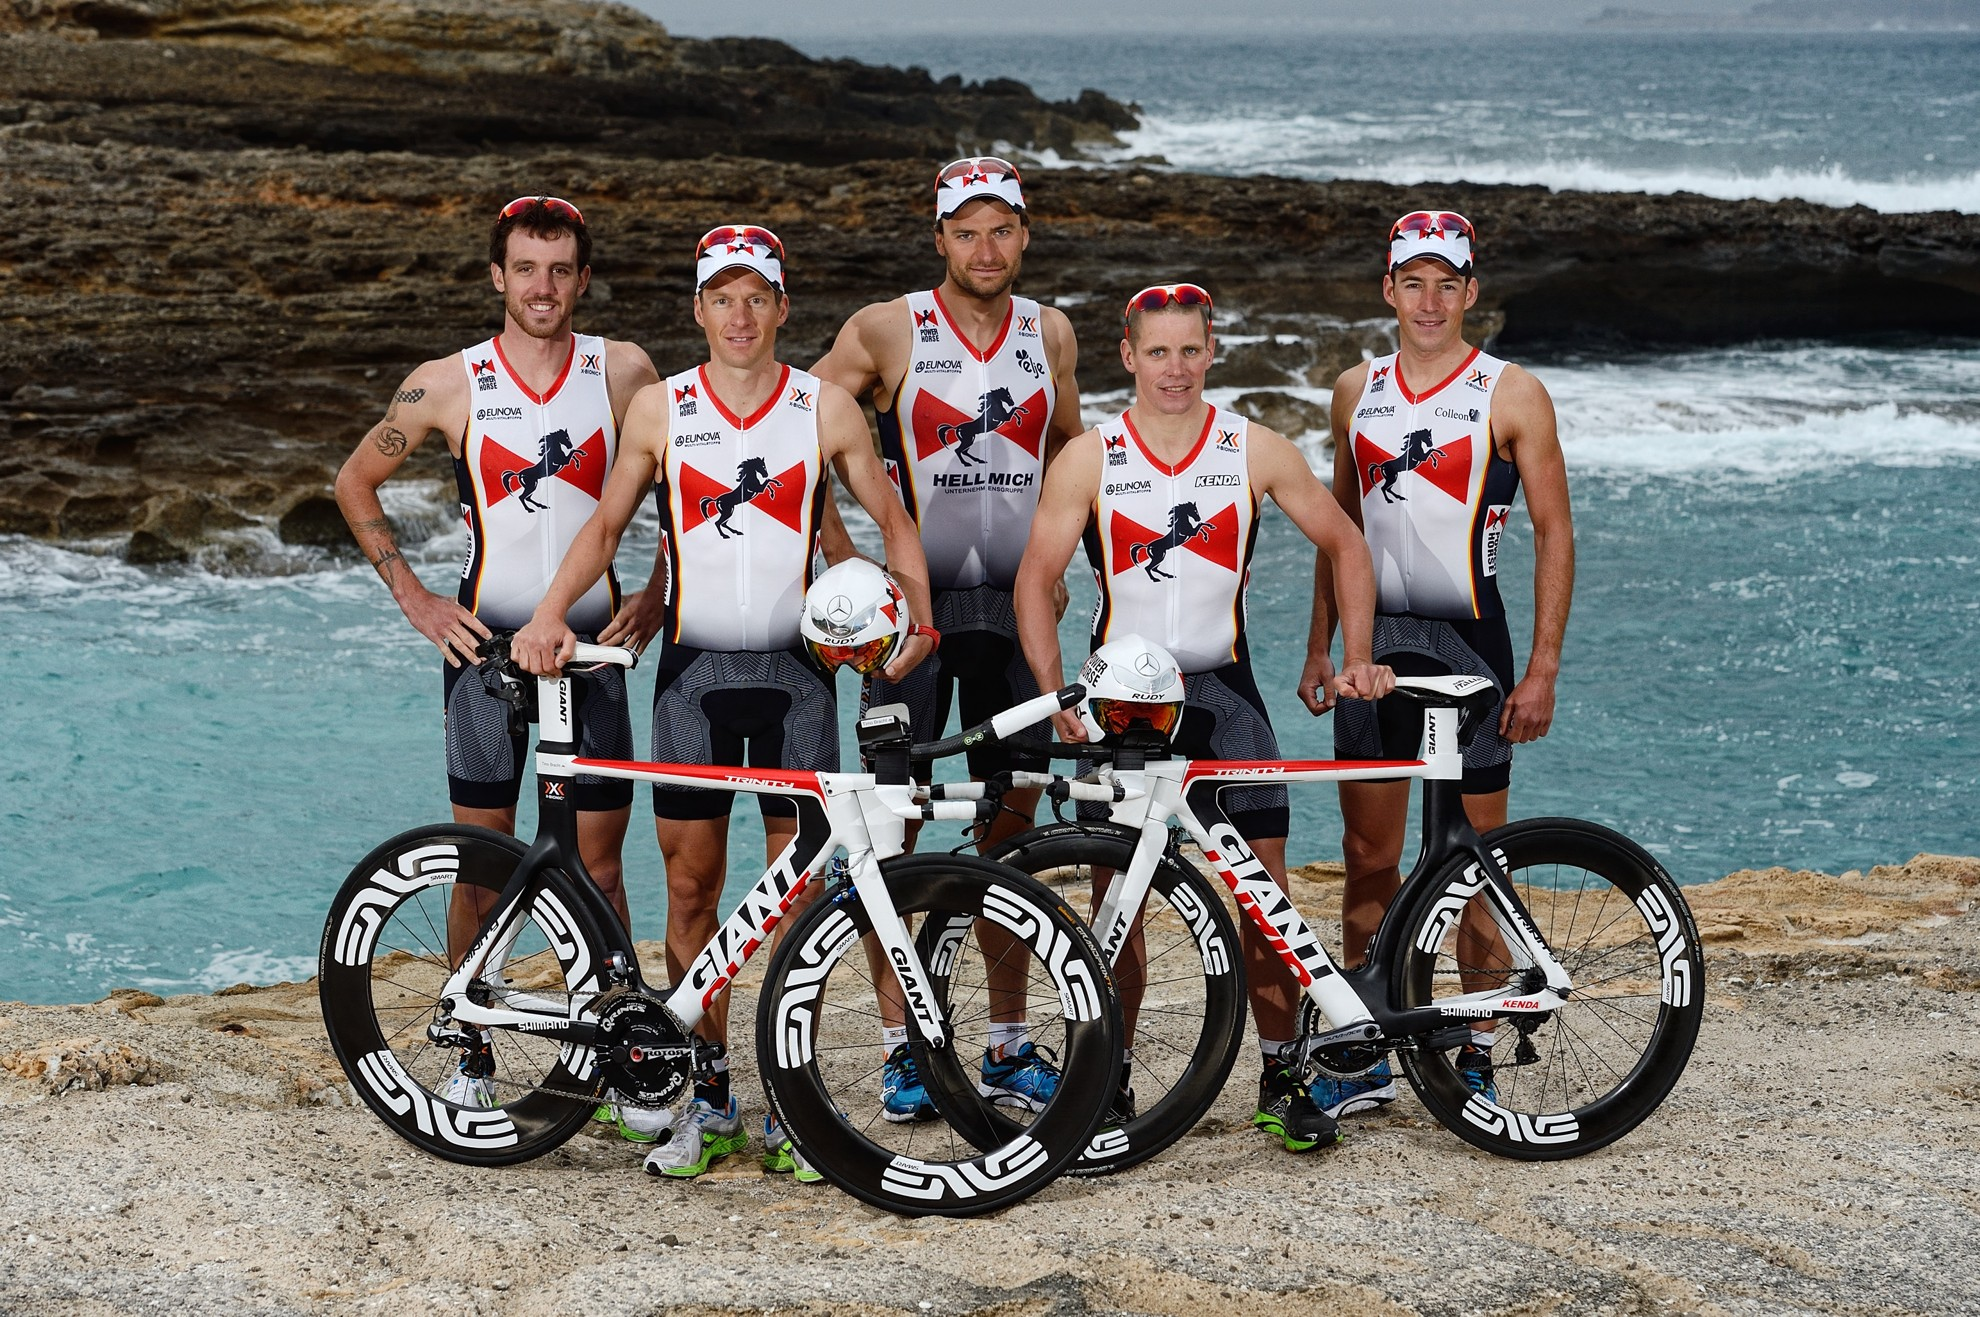 Power_Horse_Triathlon_Team